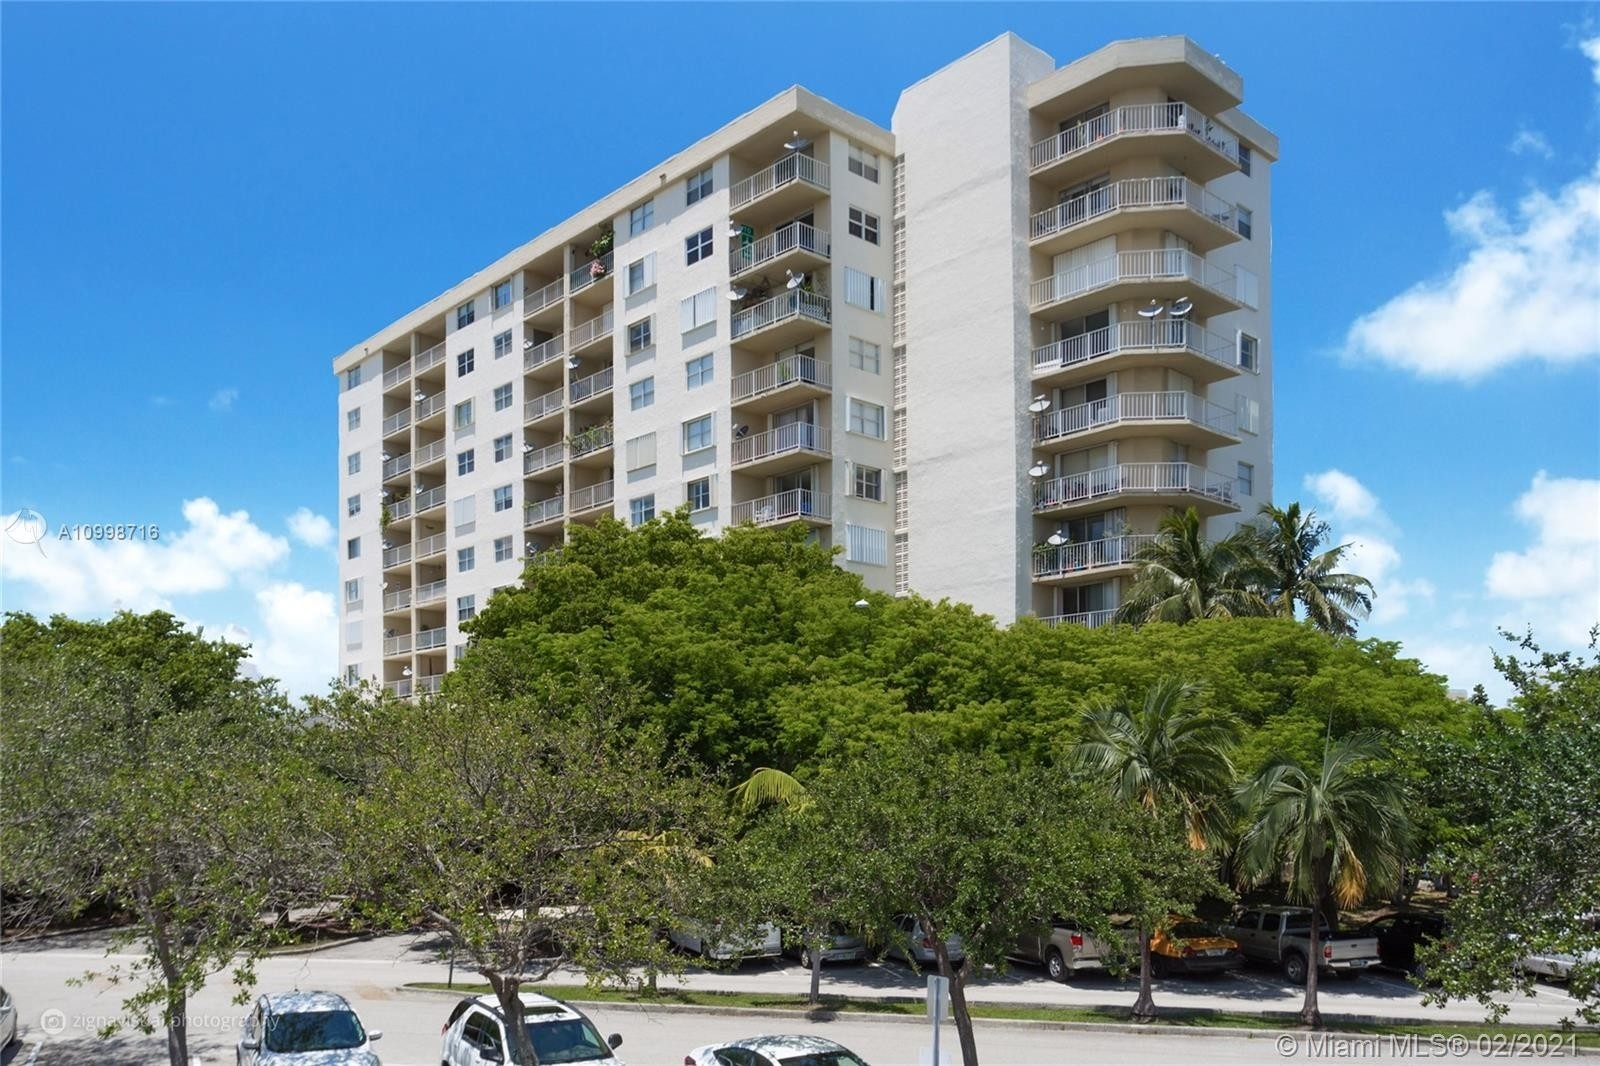 Condominium 在 6900 Bay Dr , 5L Miami Beach